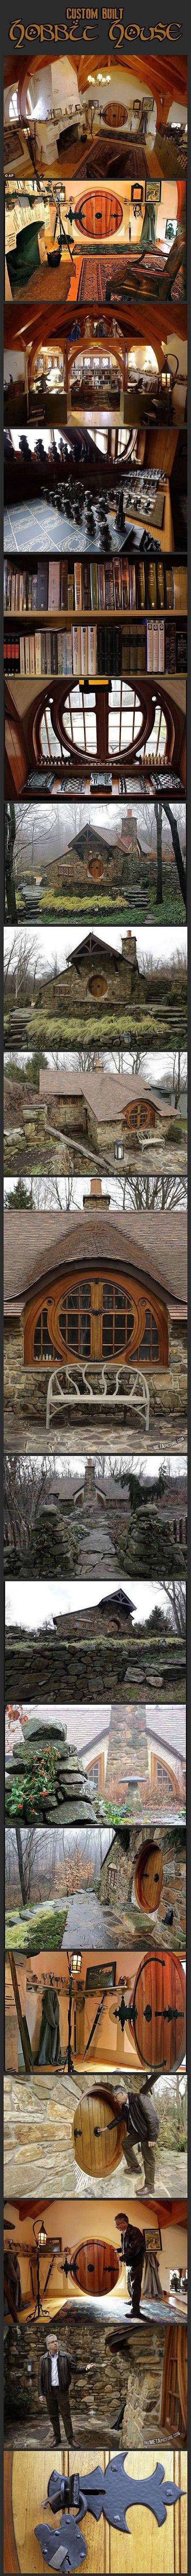 Nestled in a part of Chester County dotted with picturesque barns and rolling fields surprisingly close to Philadelphia, this Hobbit house belongs to a lifelong fan of author J.R.R. Tolkien who wanted a worthy – and private – repository for the rare books and Tolkien-inspired memorabilia he has collected in 30 years of travel in the U.S. and abroad.